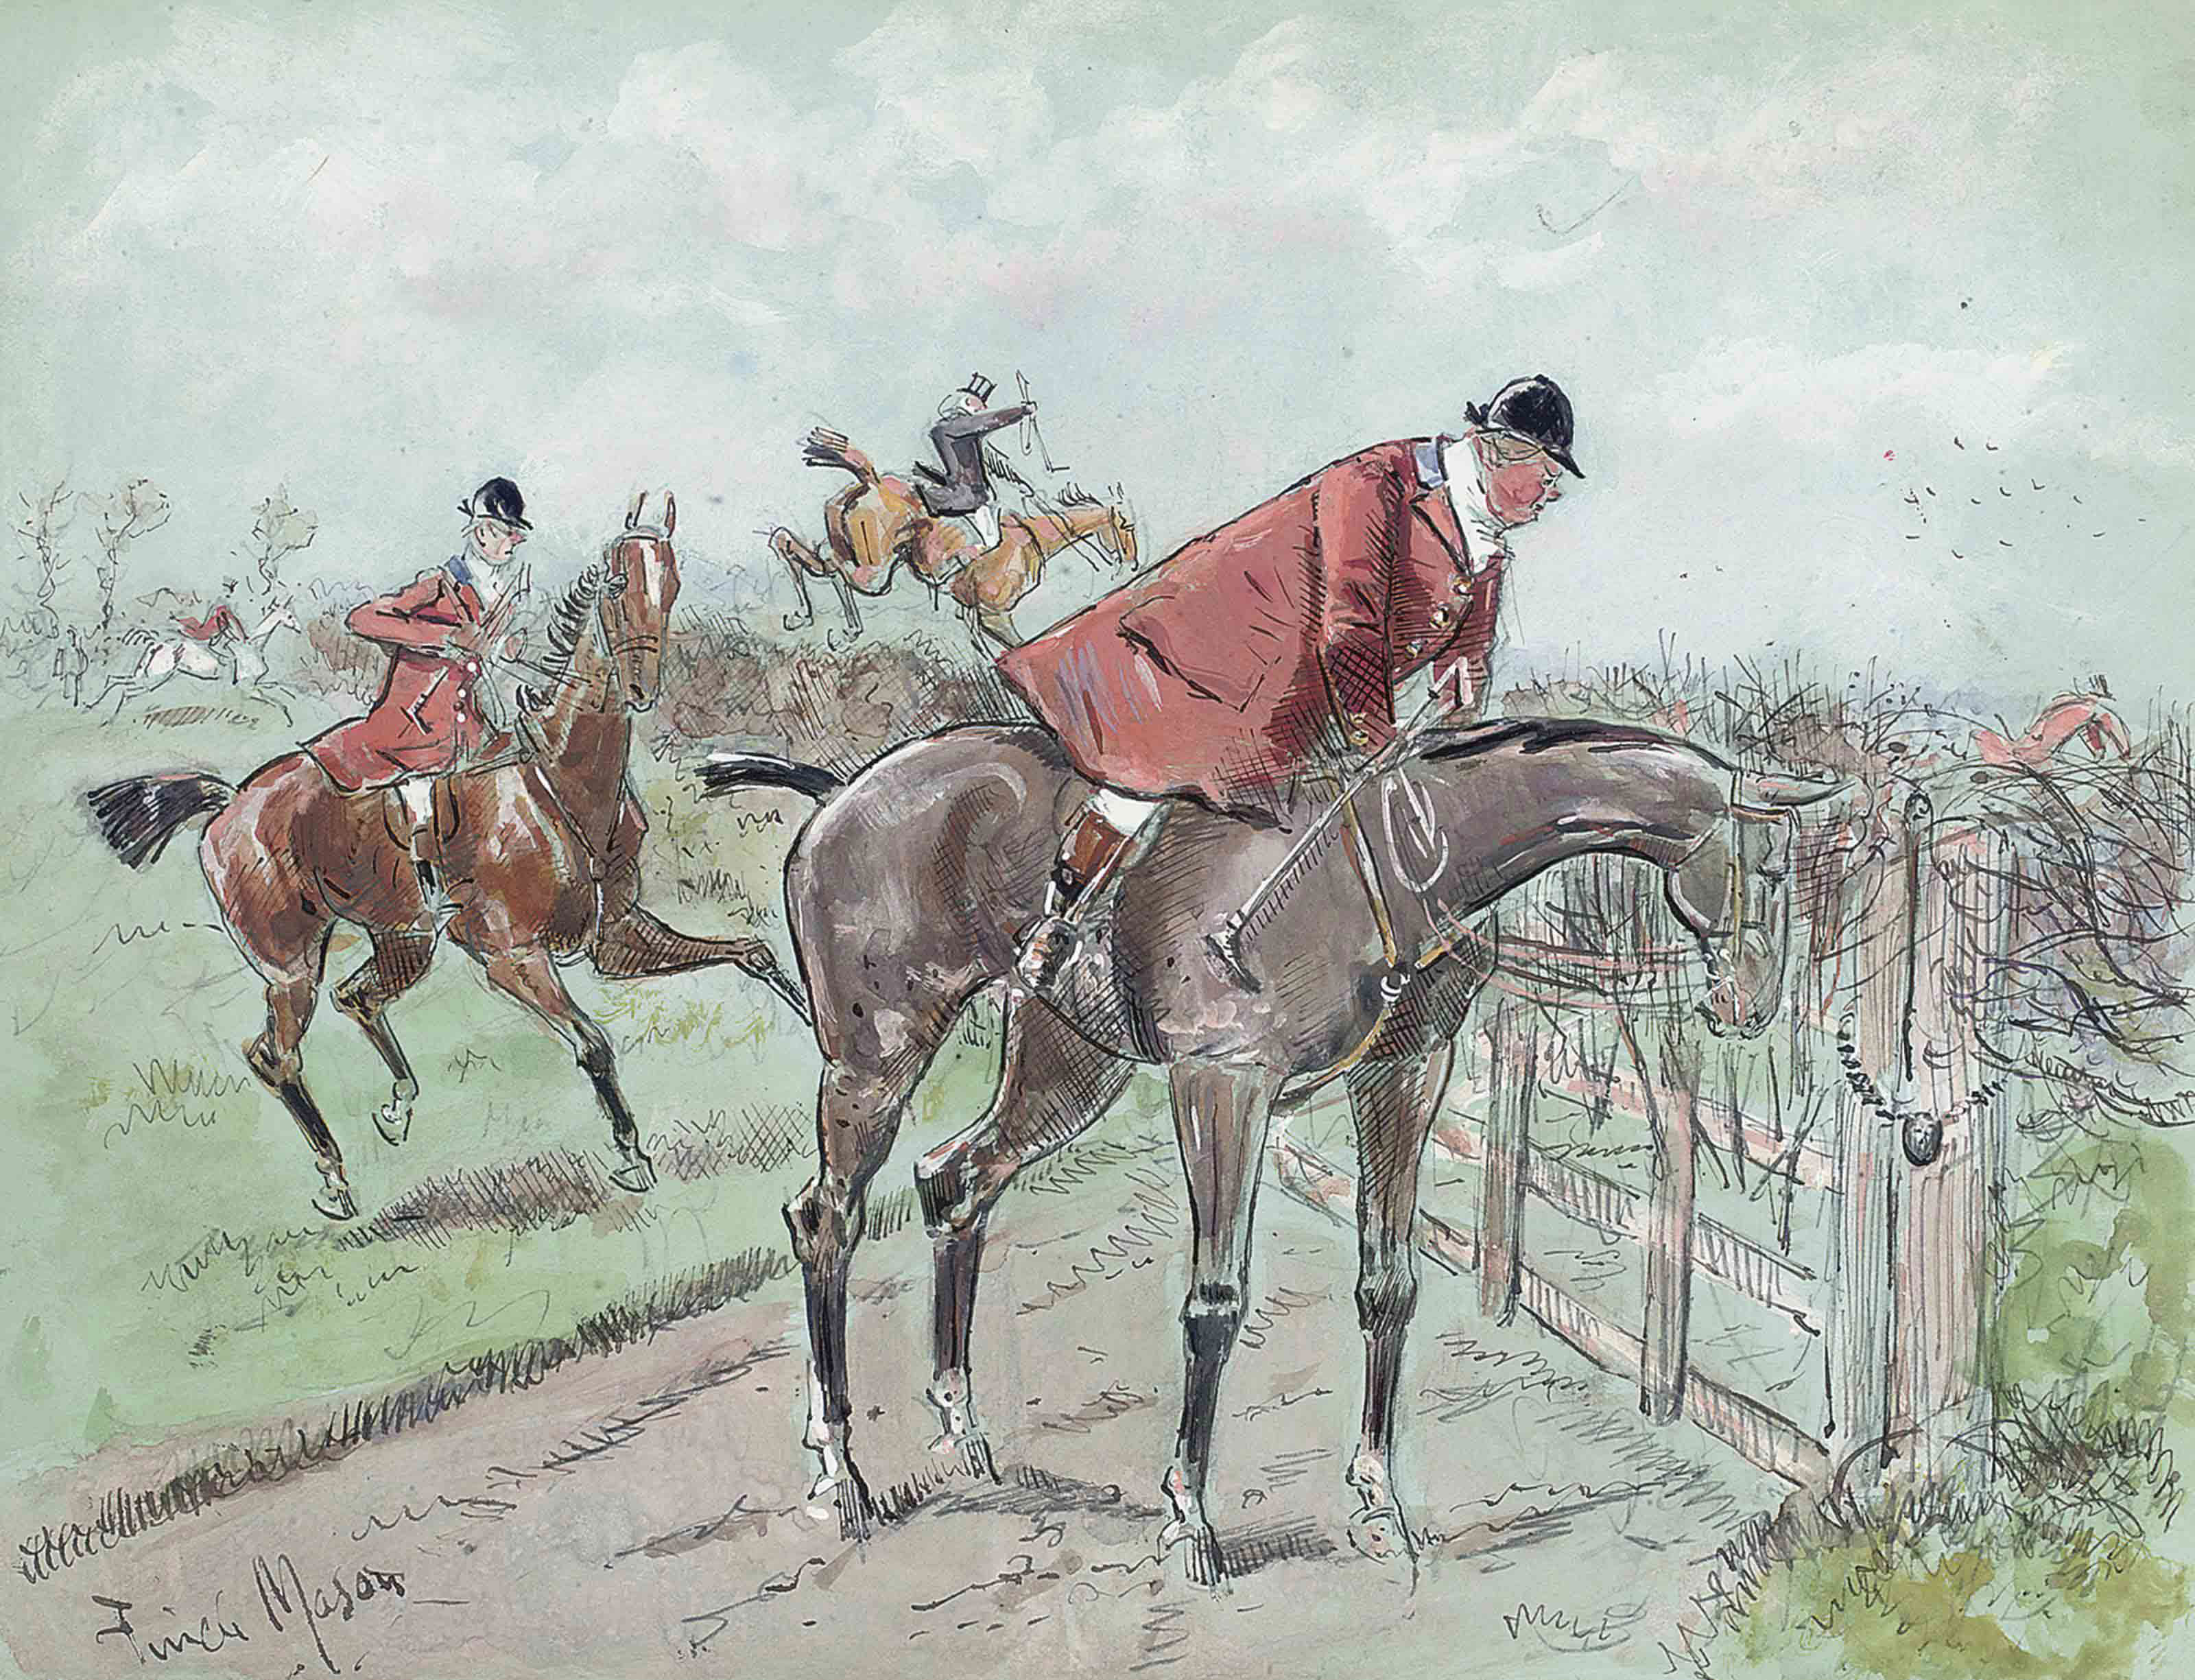 'Hallo old boy'; The refusal (illustrated); and 'Too much familiarity breeds contemptory'